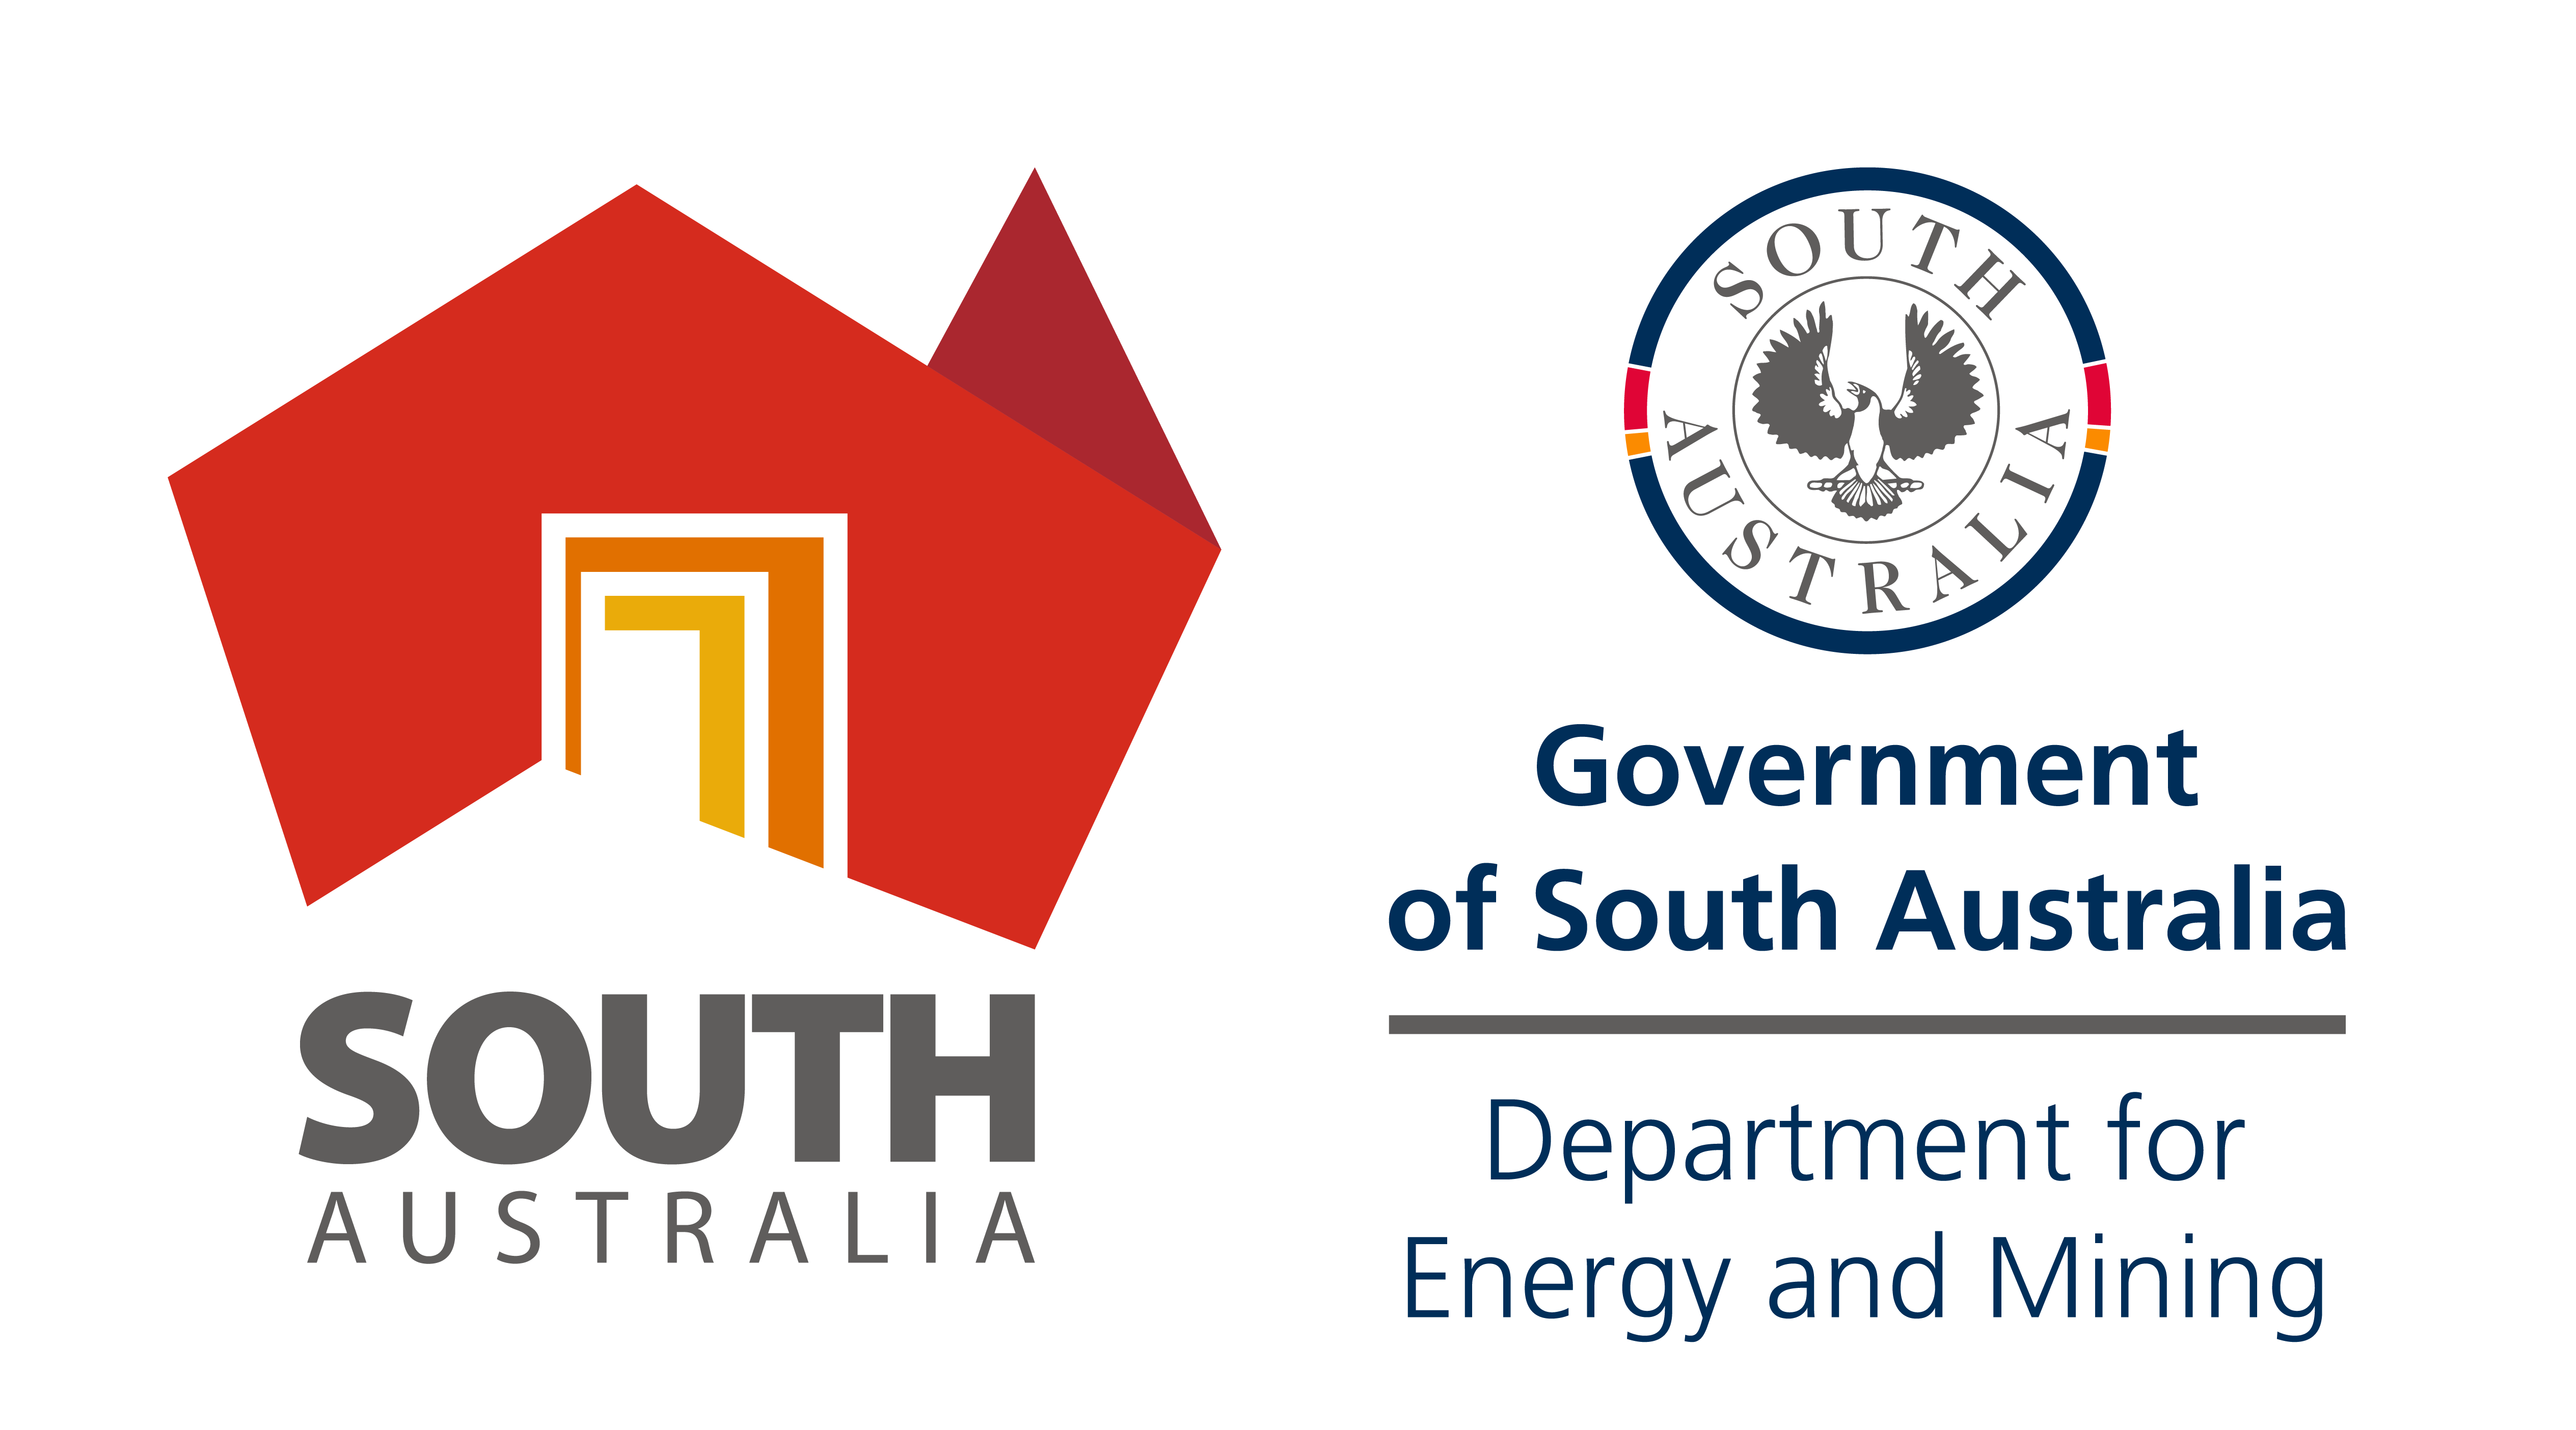 Department for Energy and Mining